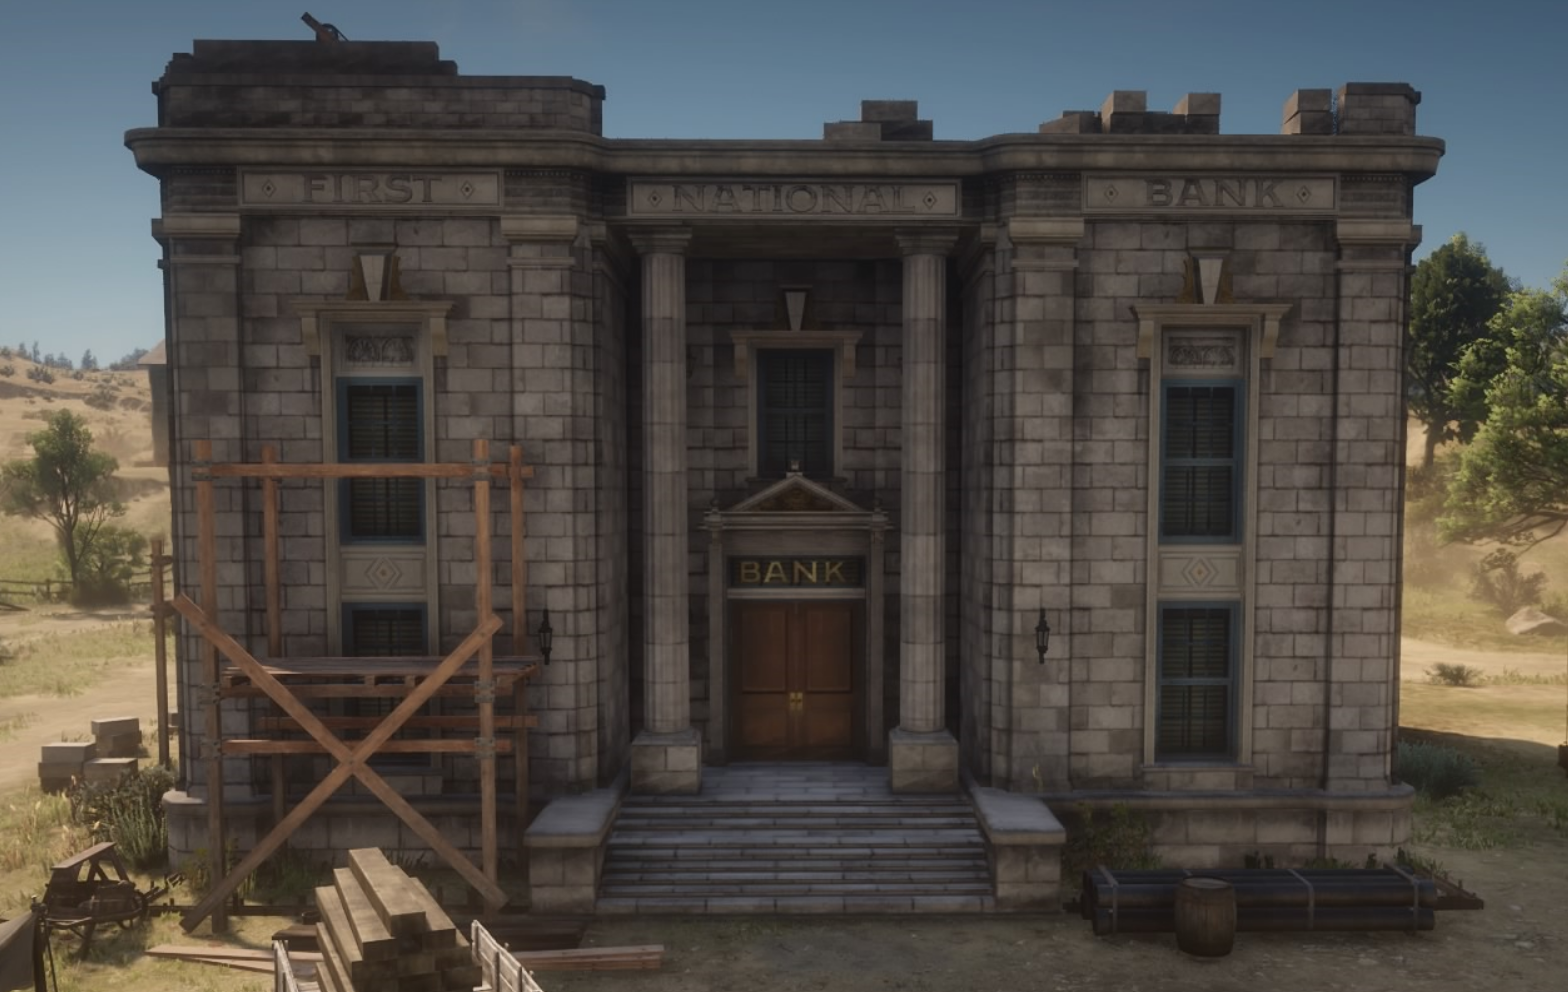 First National Bank of Blackwater